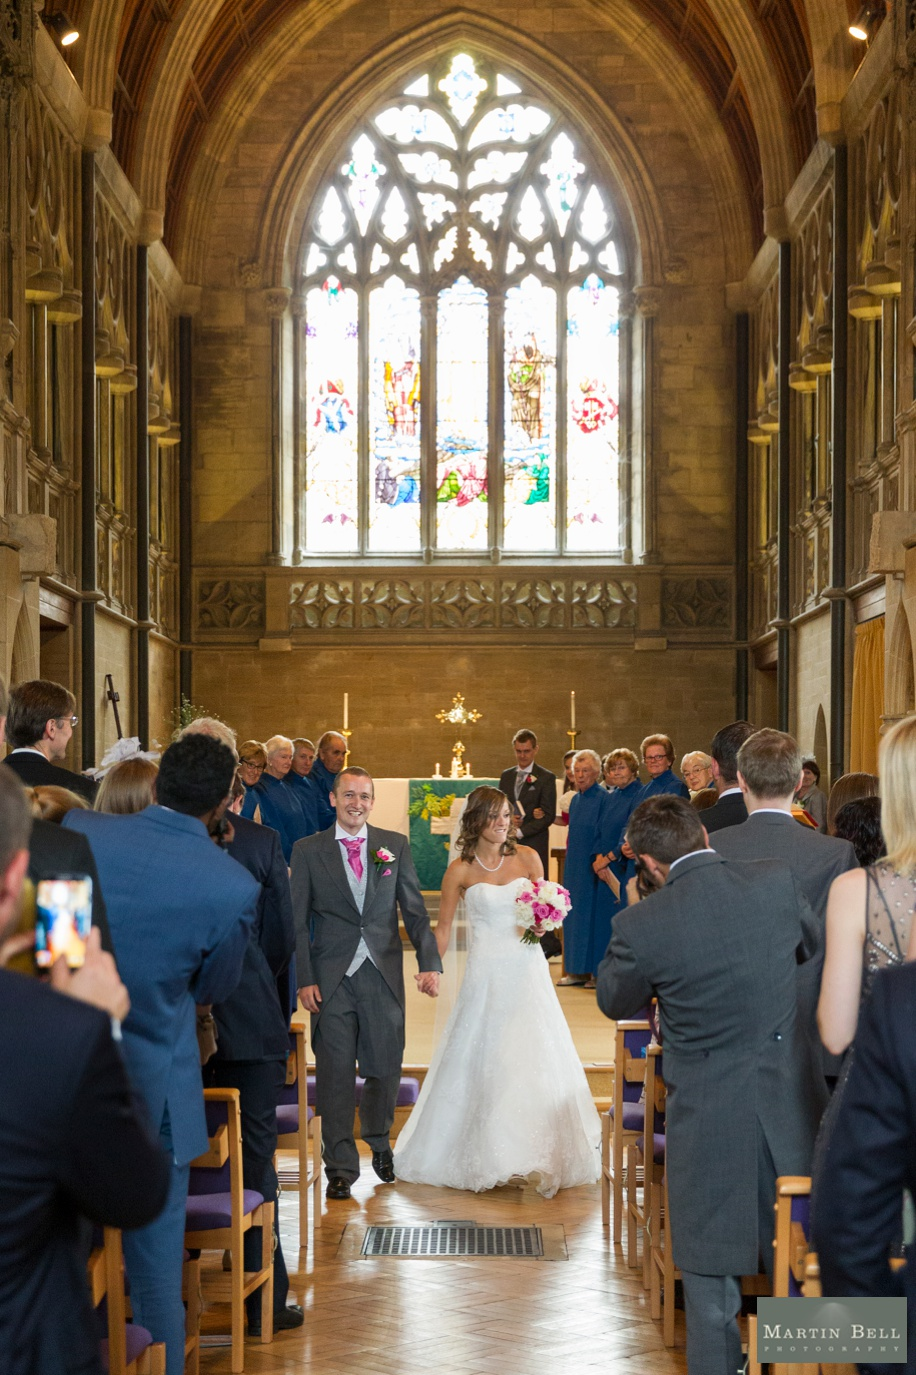 Wedding ceremony vows at St Nicholas church in Brockenhurst - Bride and Groom walking up the aisle